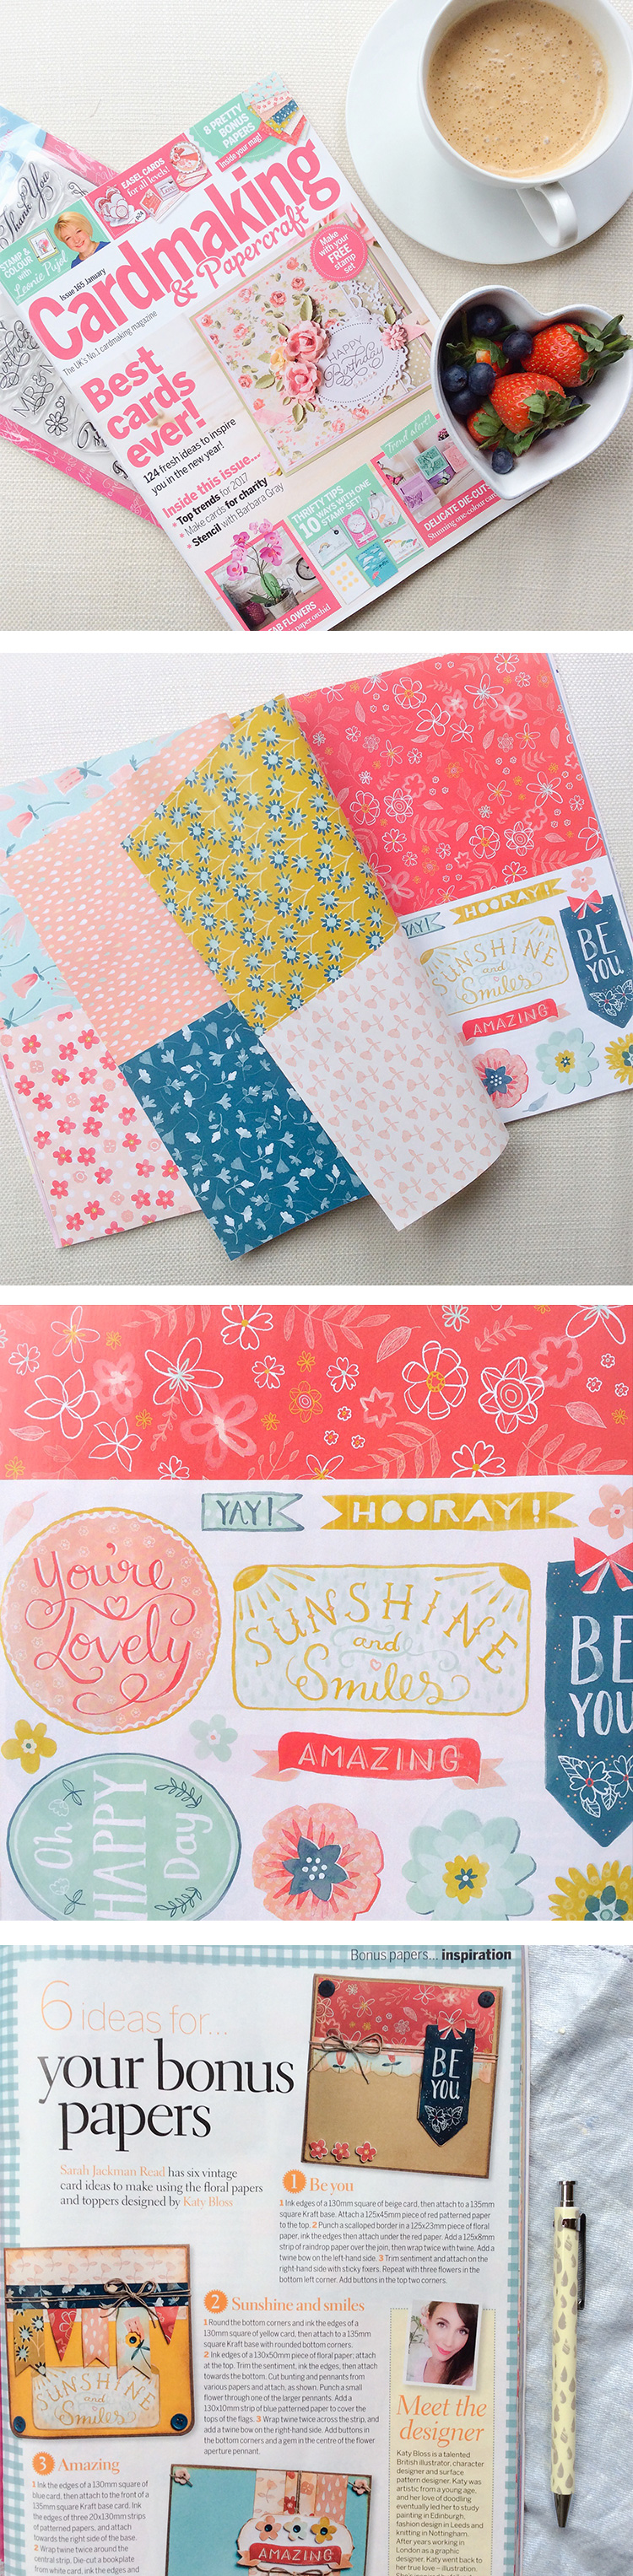 Katy Bloss Cardmaking and Papercraft Magazine free patterned papers